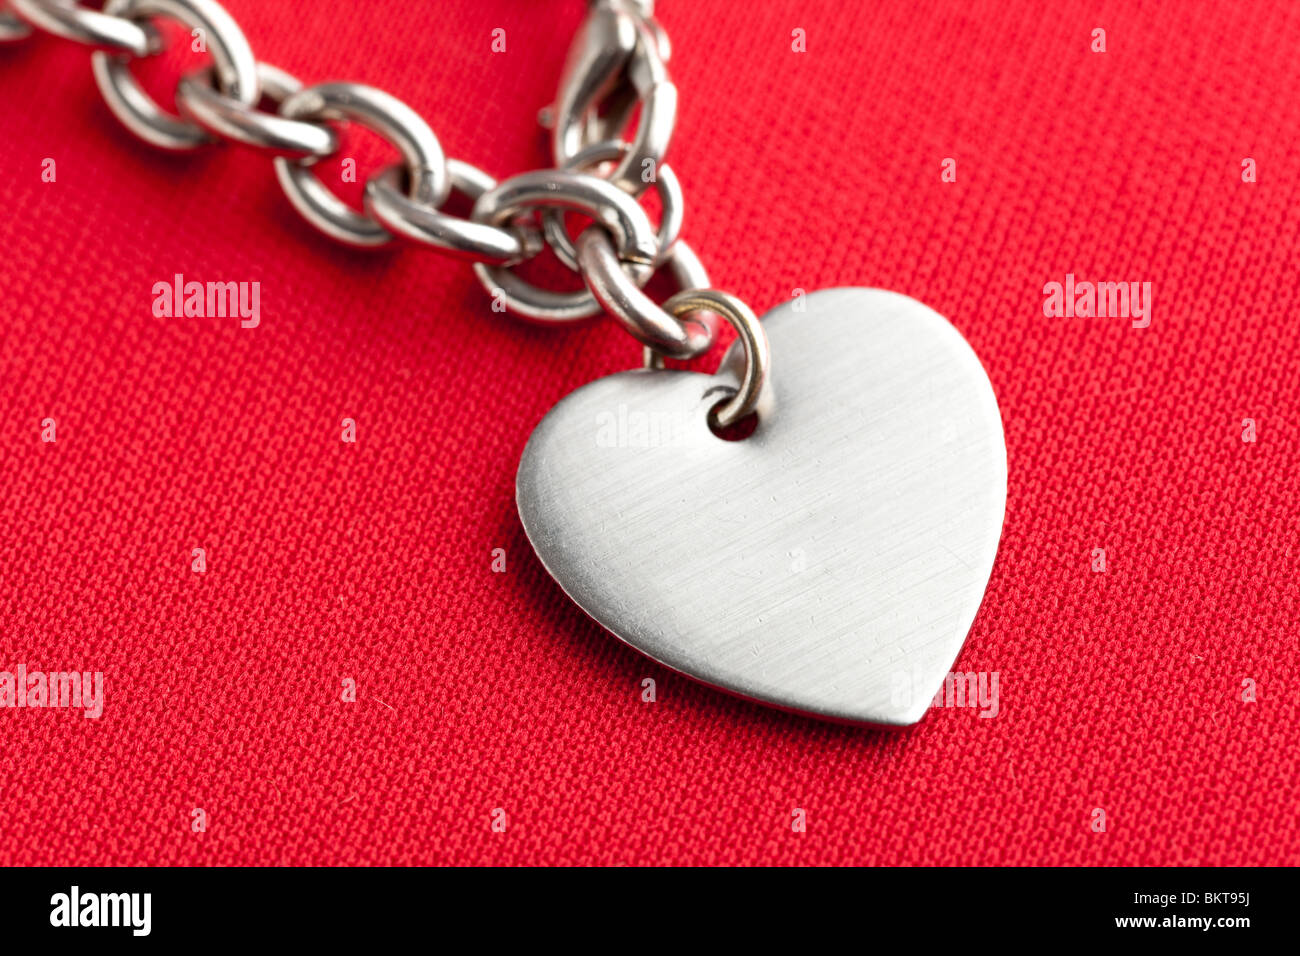 Chain and Heart Shape close up - Stock Image